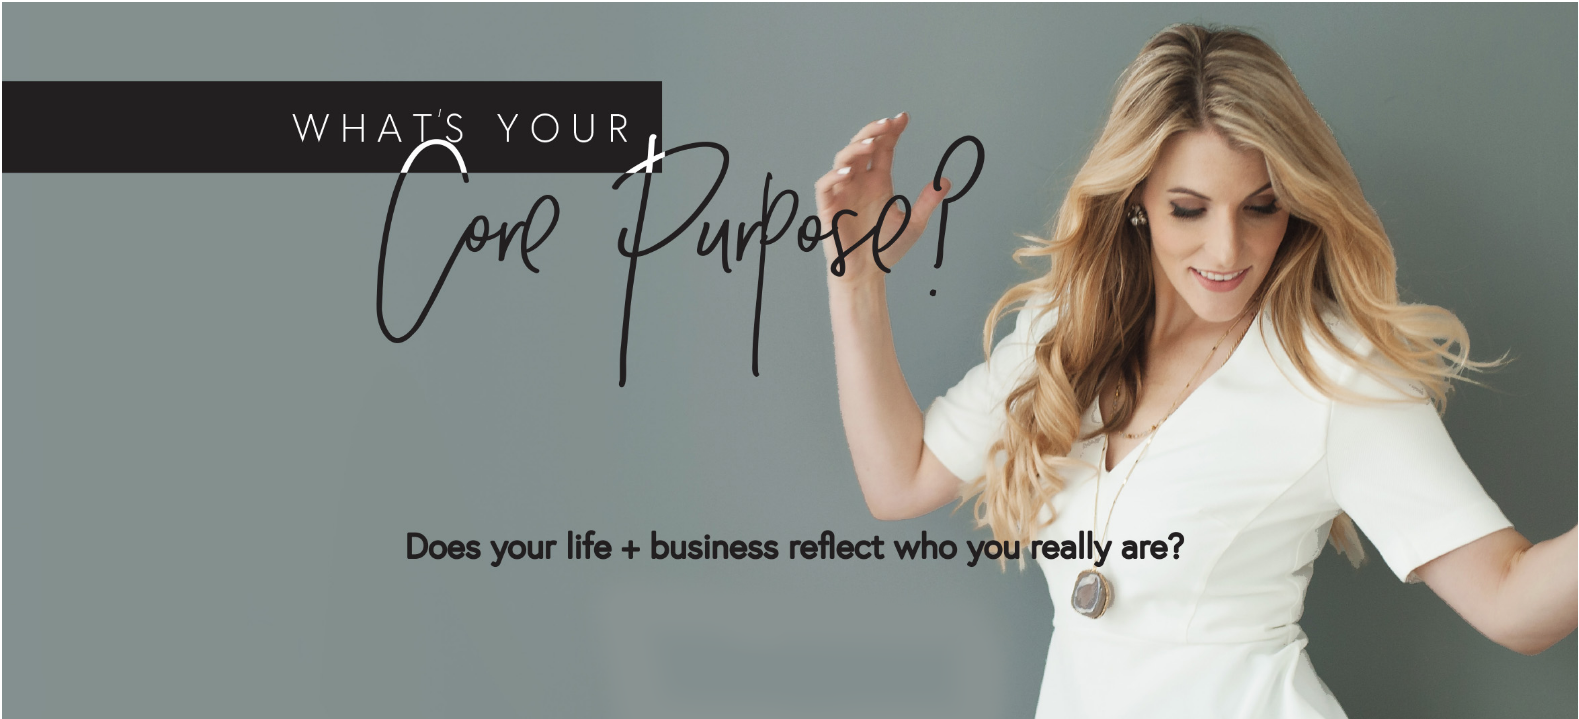 woman in a white shirt dancing and What is your core purpose?